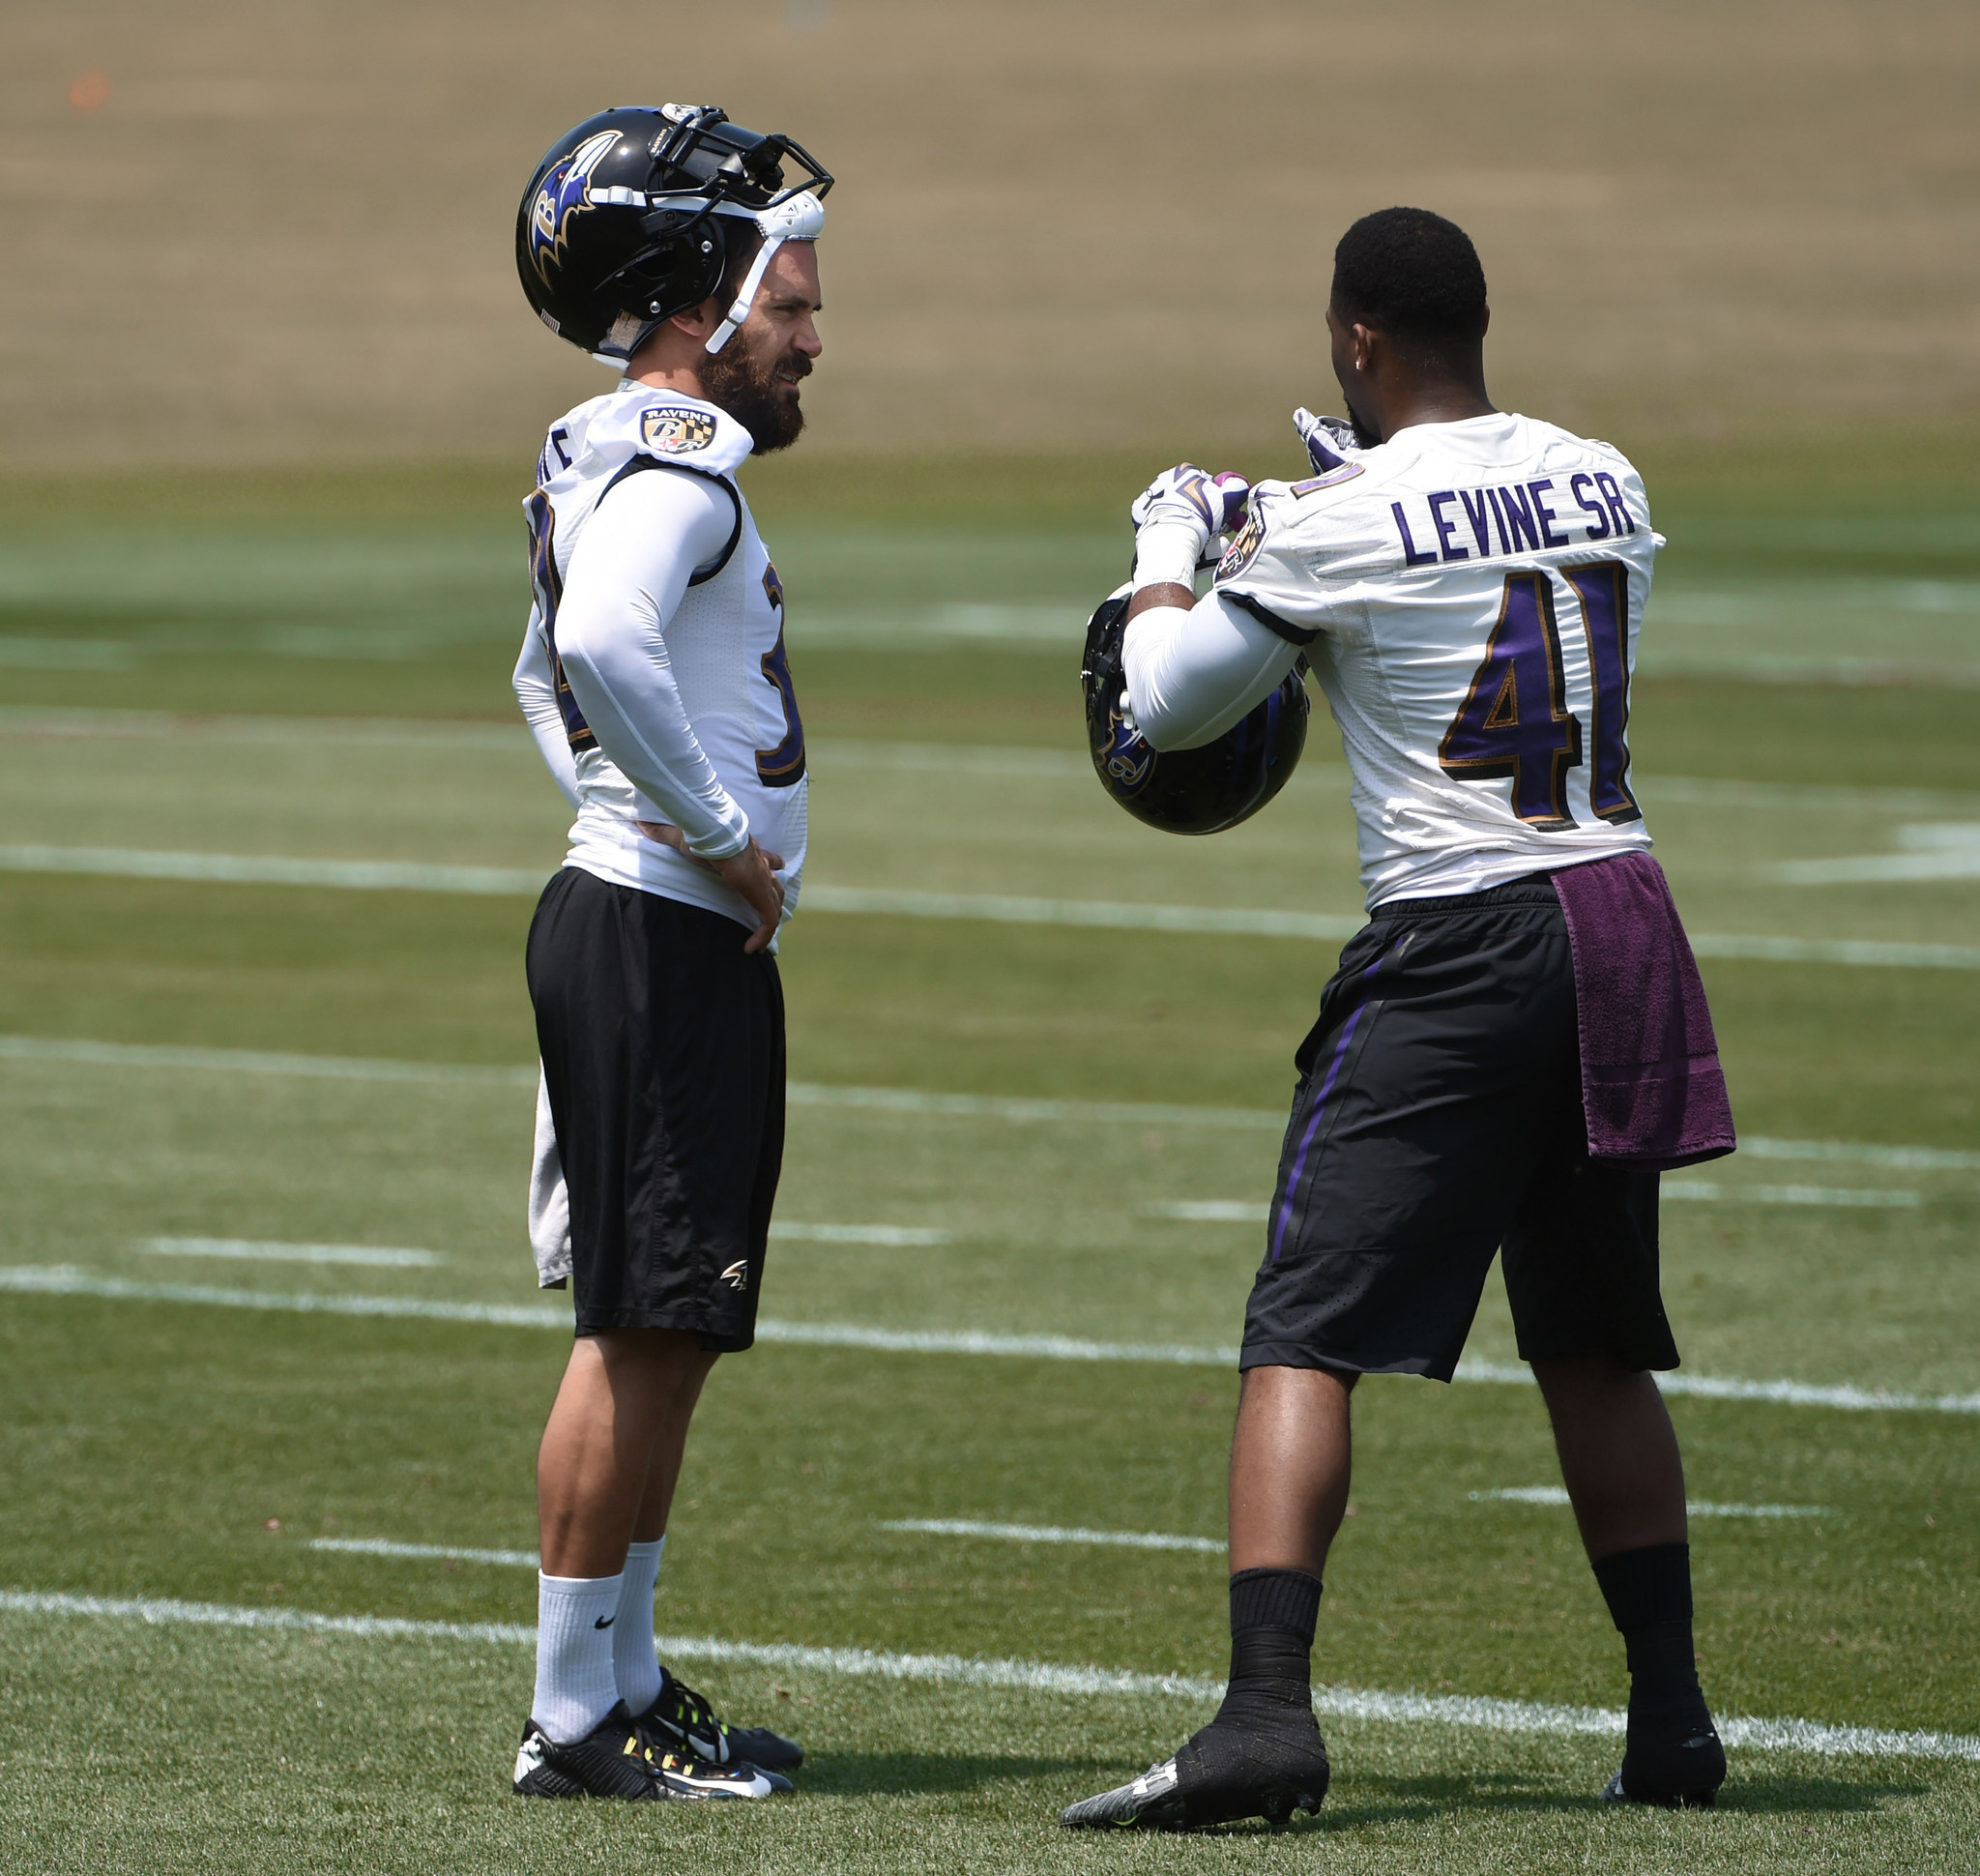 Bal-ravens-news-notes-and-opinions-20160530